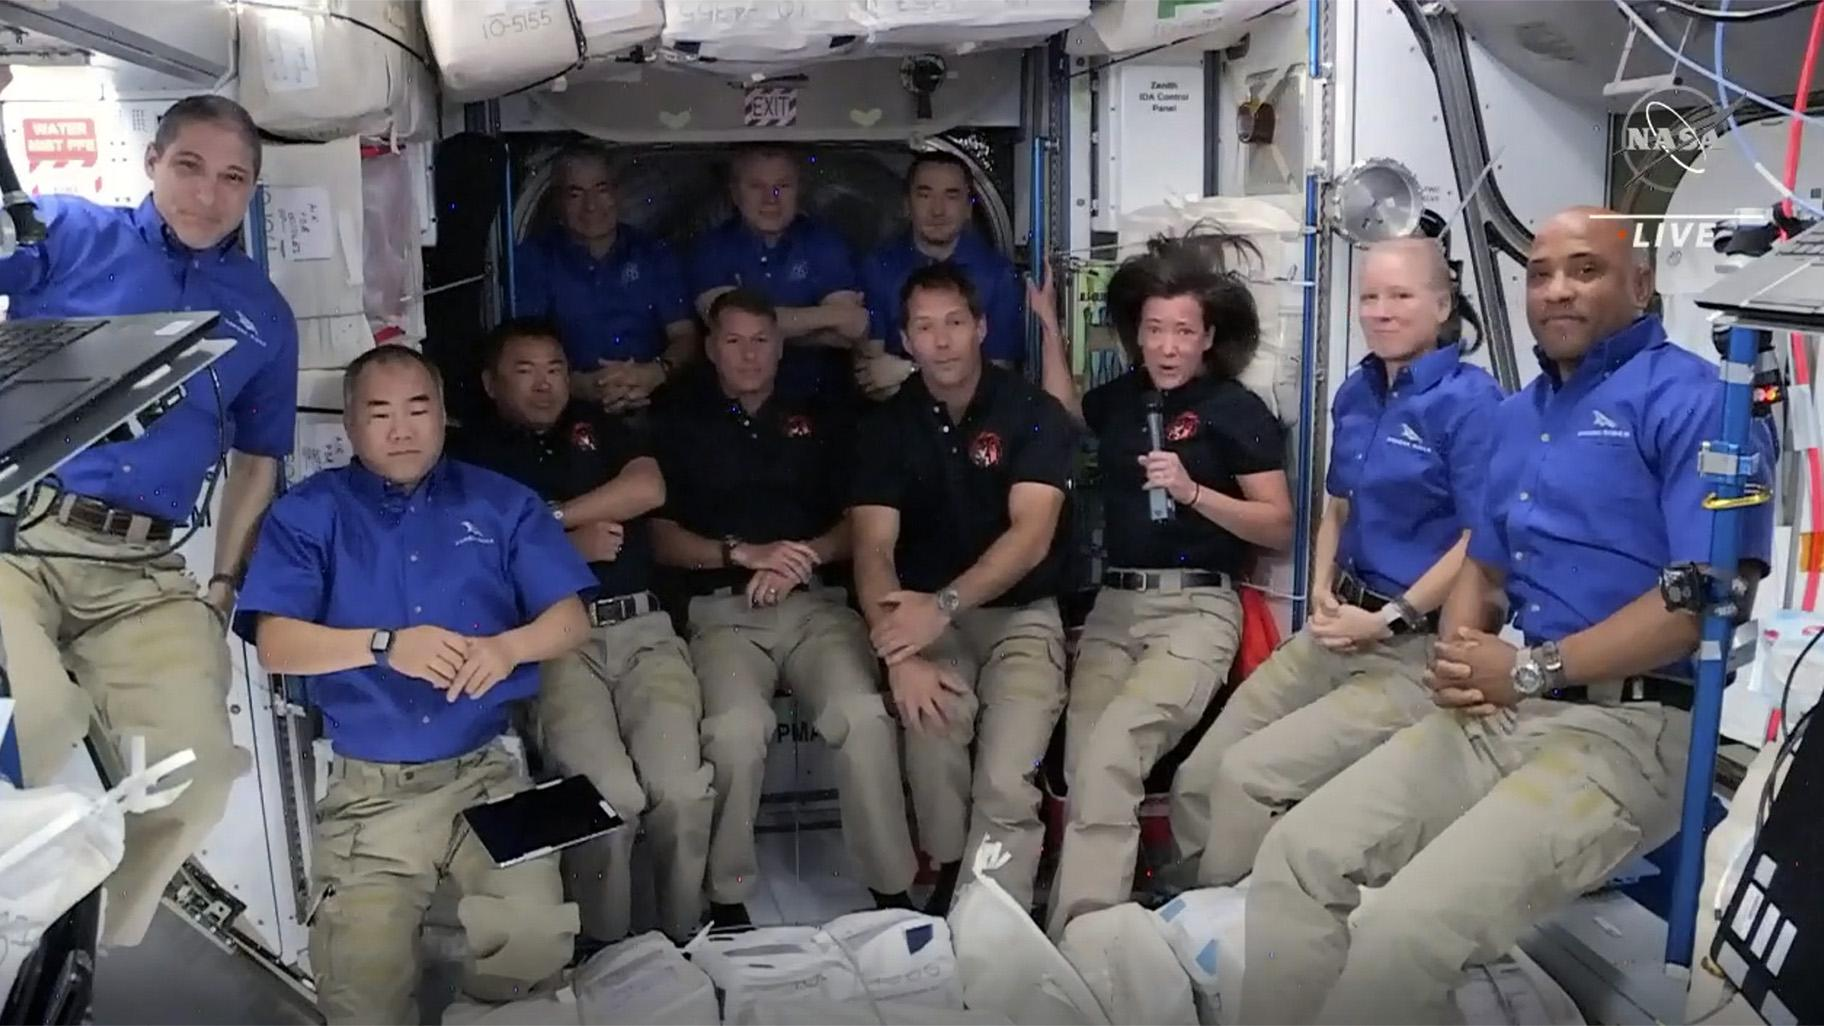 This image provided by NASA, astronauts from SpaceX join the astronauts of the International Space Station for an interview on Saturday, April 24, 2021. A recycled SpaceX capsule carrying four astronauts has arrived at the International Space Station, a day after launching from Florida. The Dragon capsule docked autonomously with the orbiting outpost on Saturday. (NASA via AP)  - SpaceX Crew Launch AP - Biggest Space Station Crowd in Decade After SpaceX Arrival   Chicago News